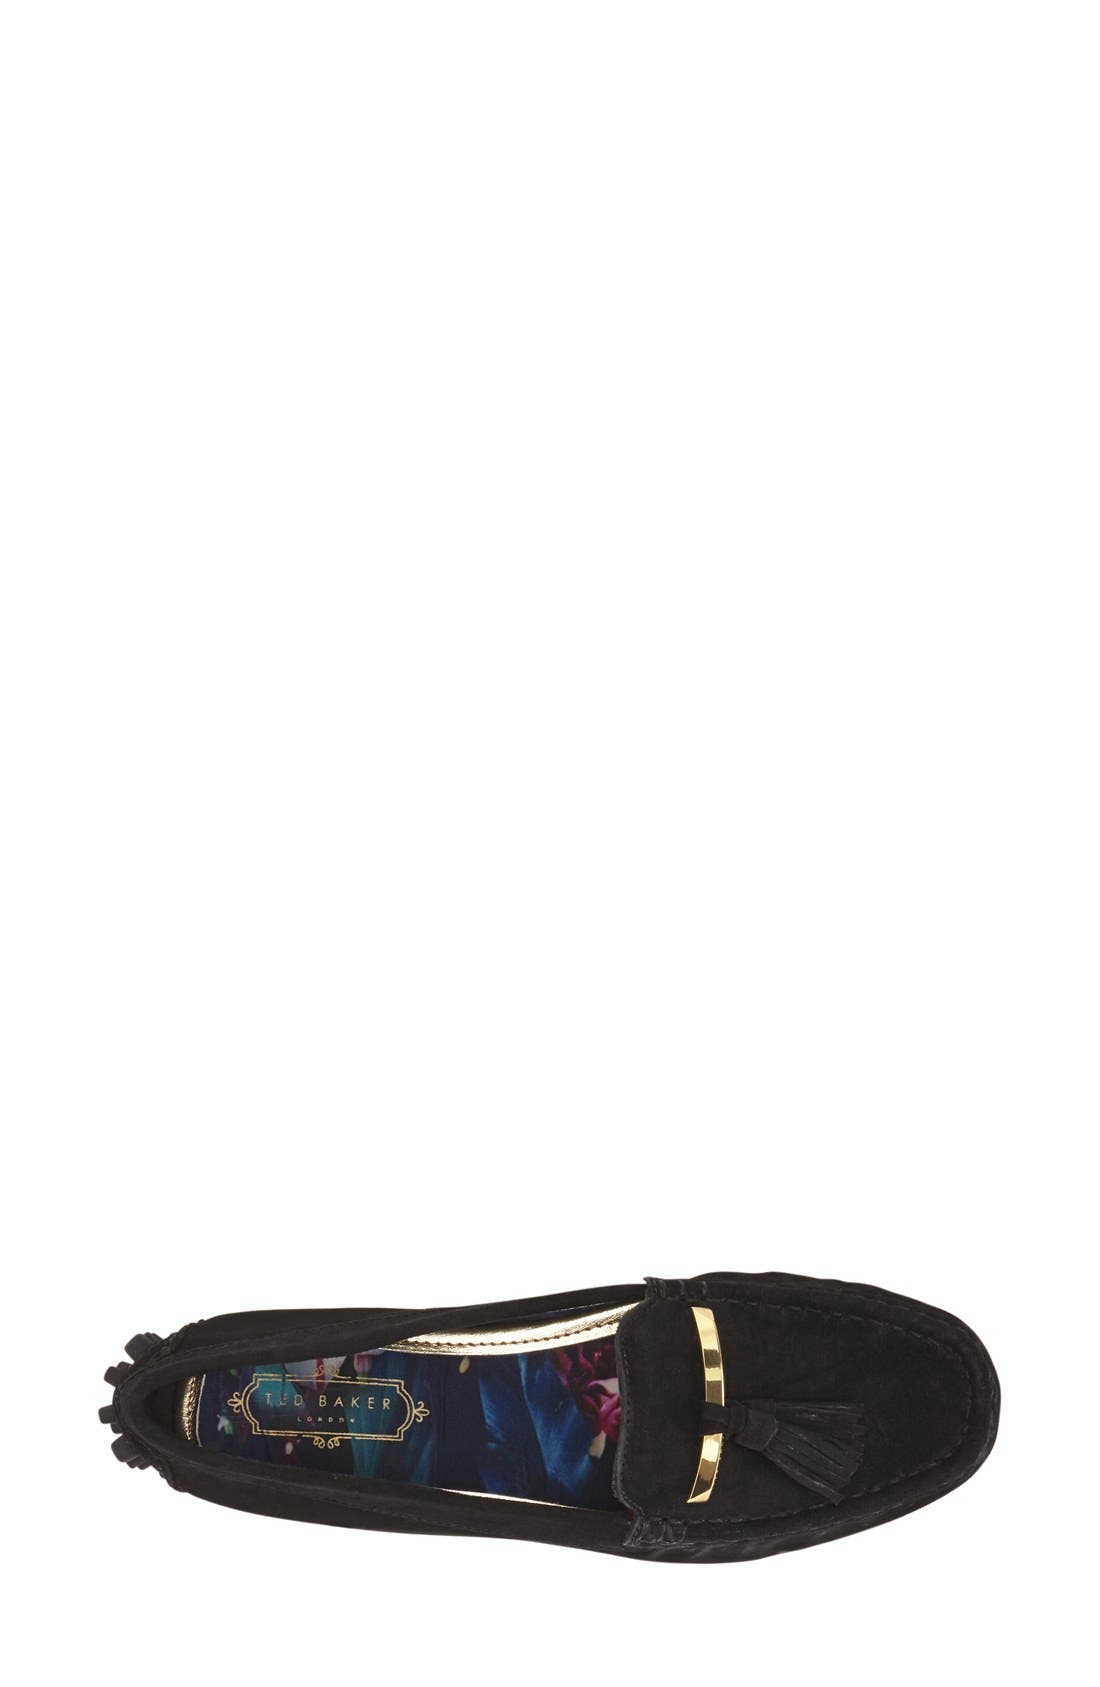 TED BAKER LONDON,                             'Harlii' Driving Loafer,                             Alternate thumbnail 2, color,                             010